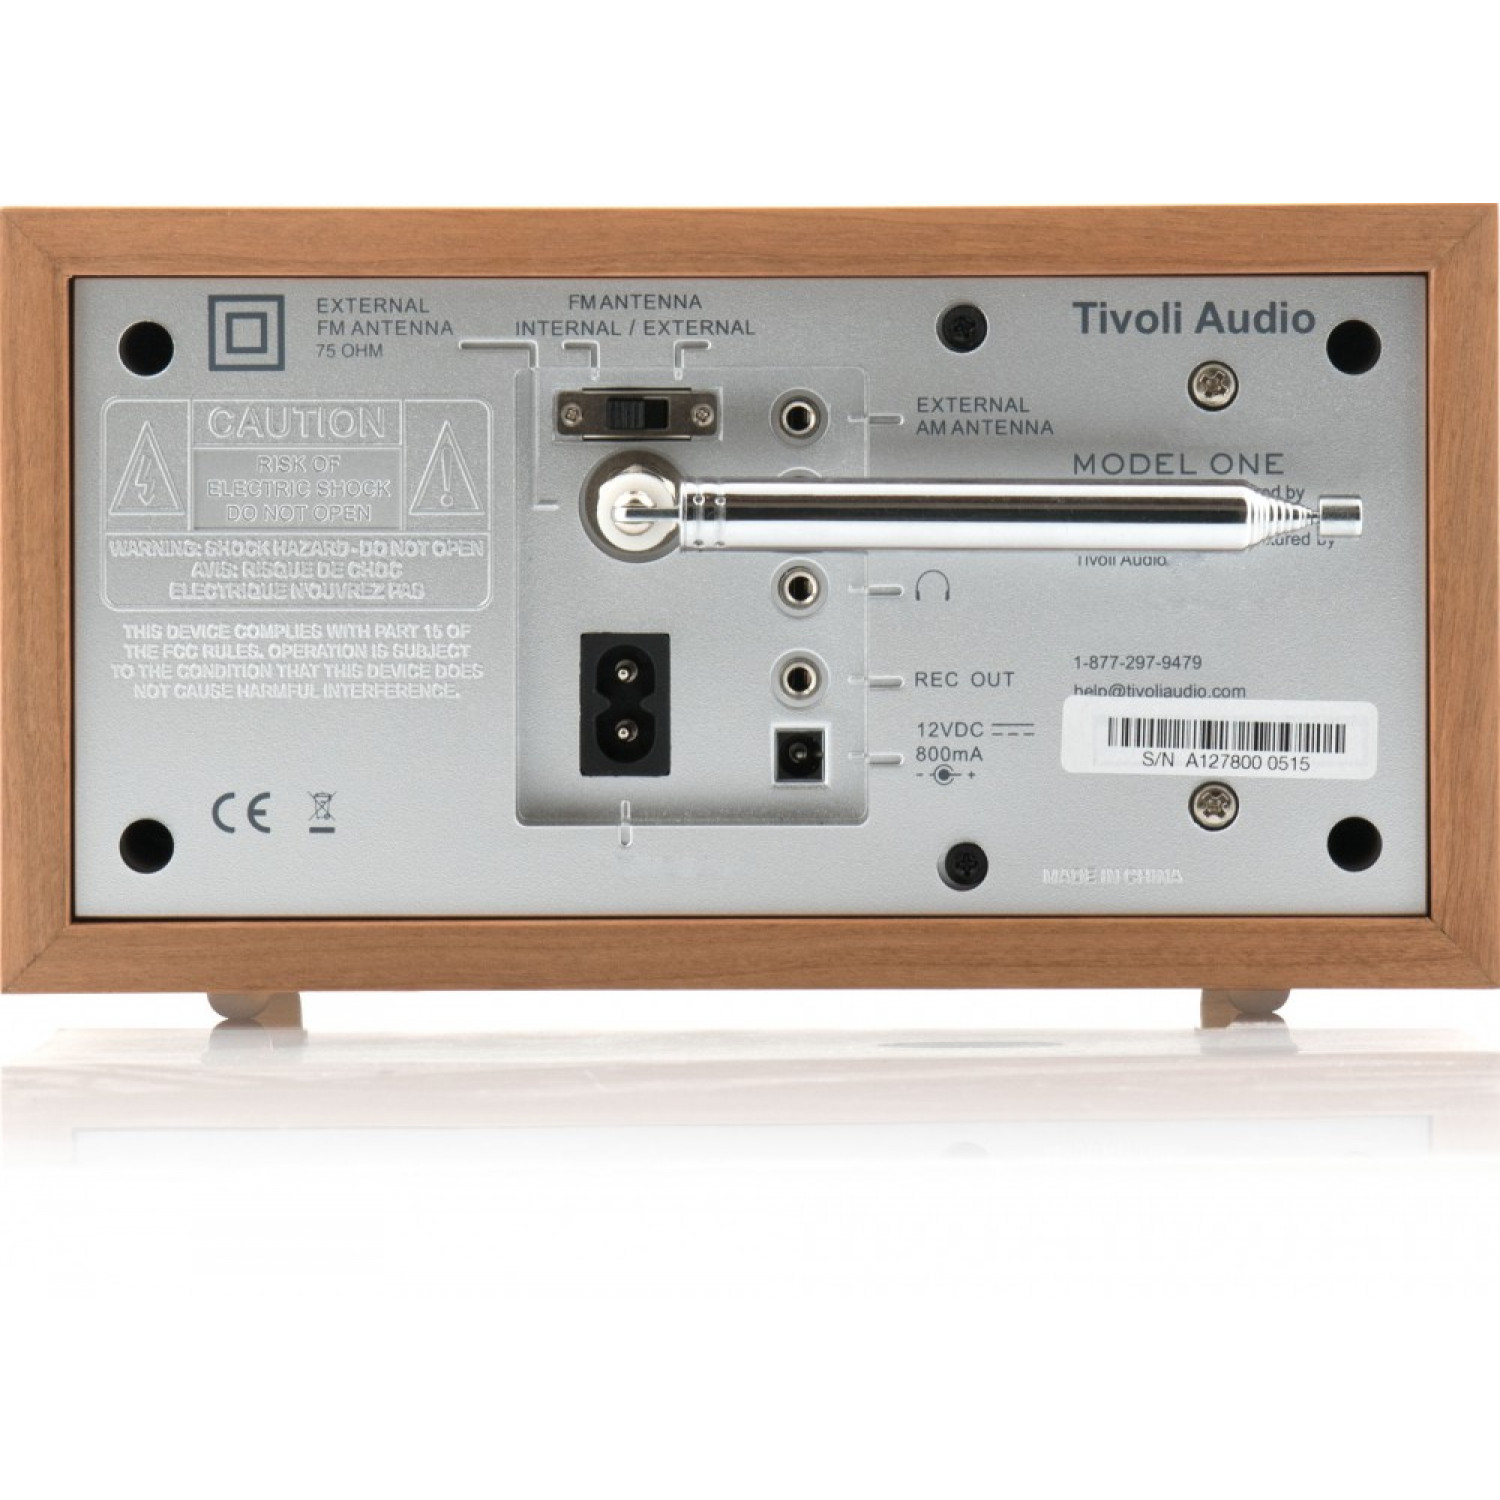 Tivoli Audio Model One Cijena Tivoli Audio Model One